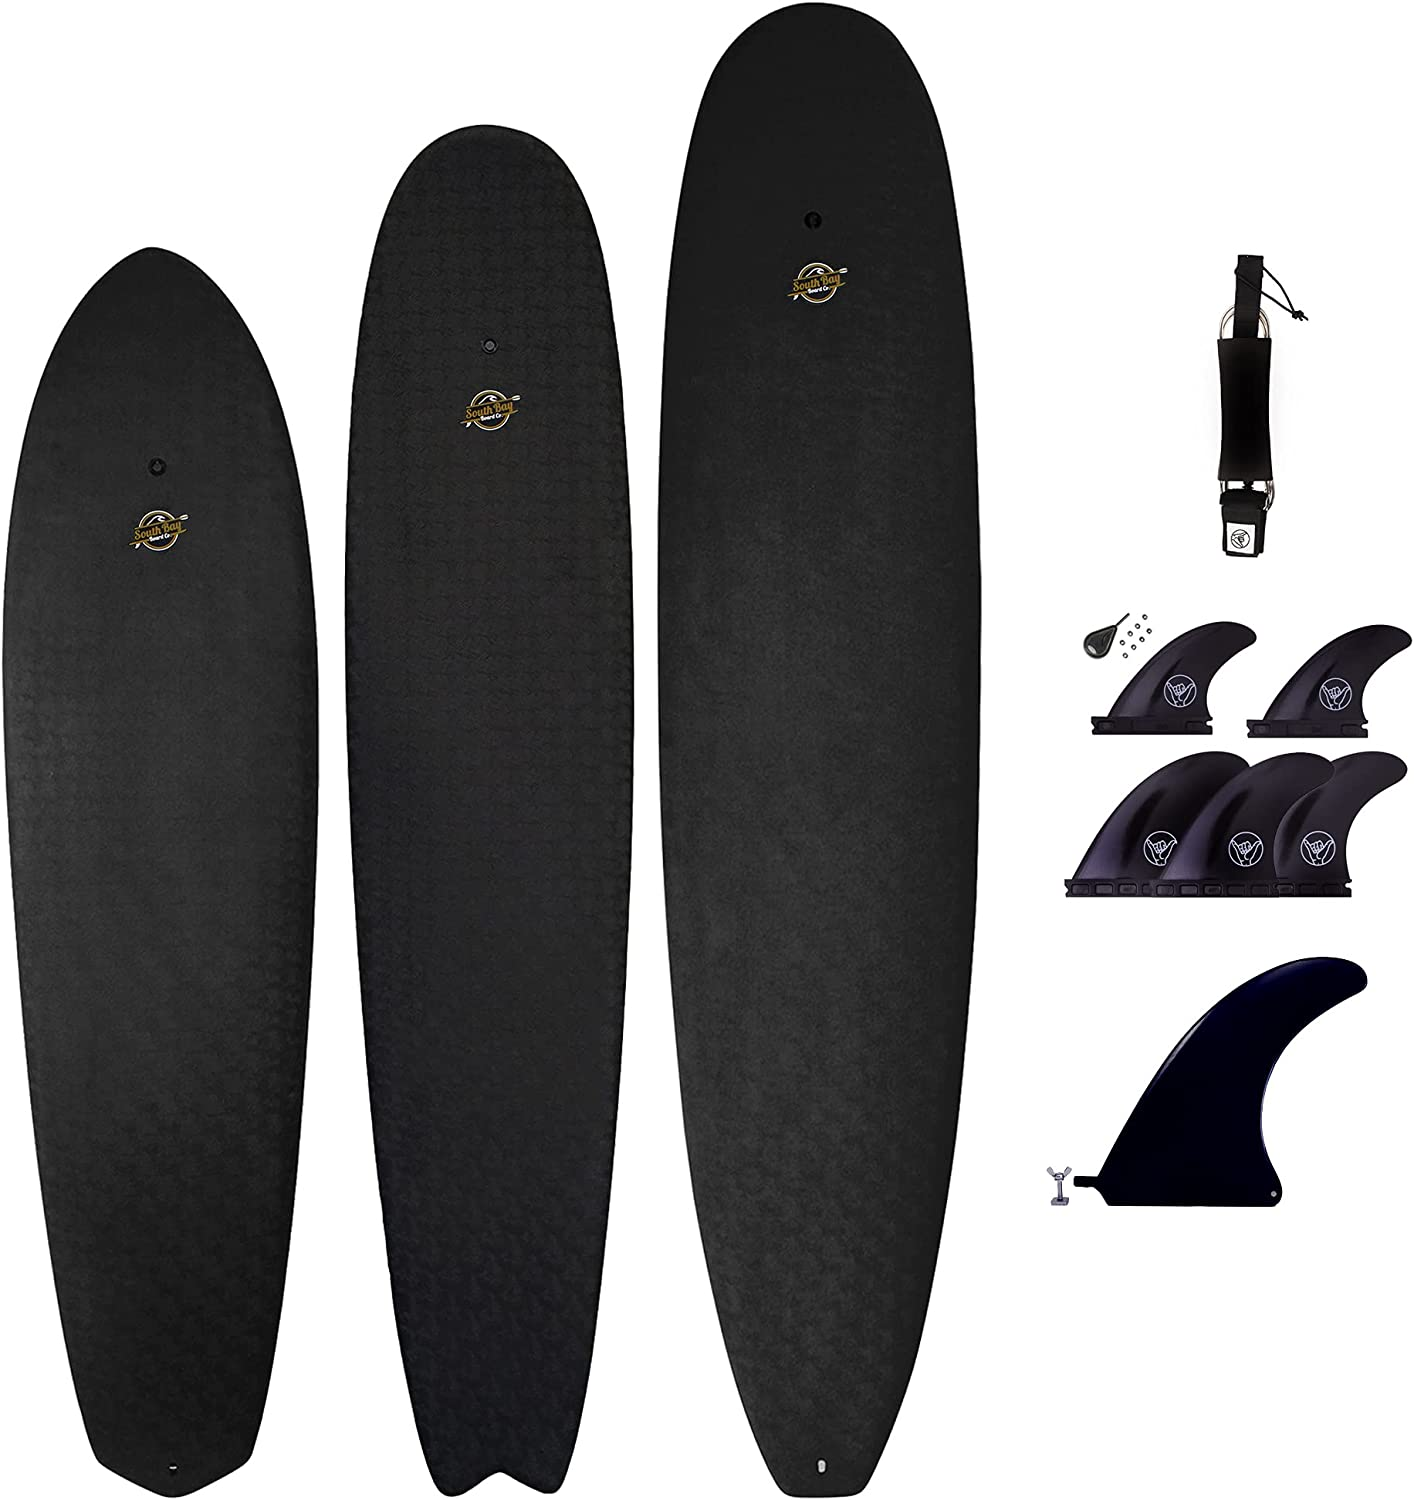 South Bay Board Co. - 格安 7'7 Surfboards Hybrid メーカー直送 8'4 Wax-Free 9'6 S